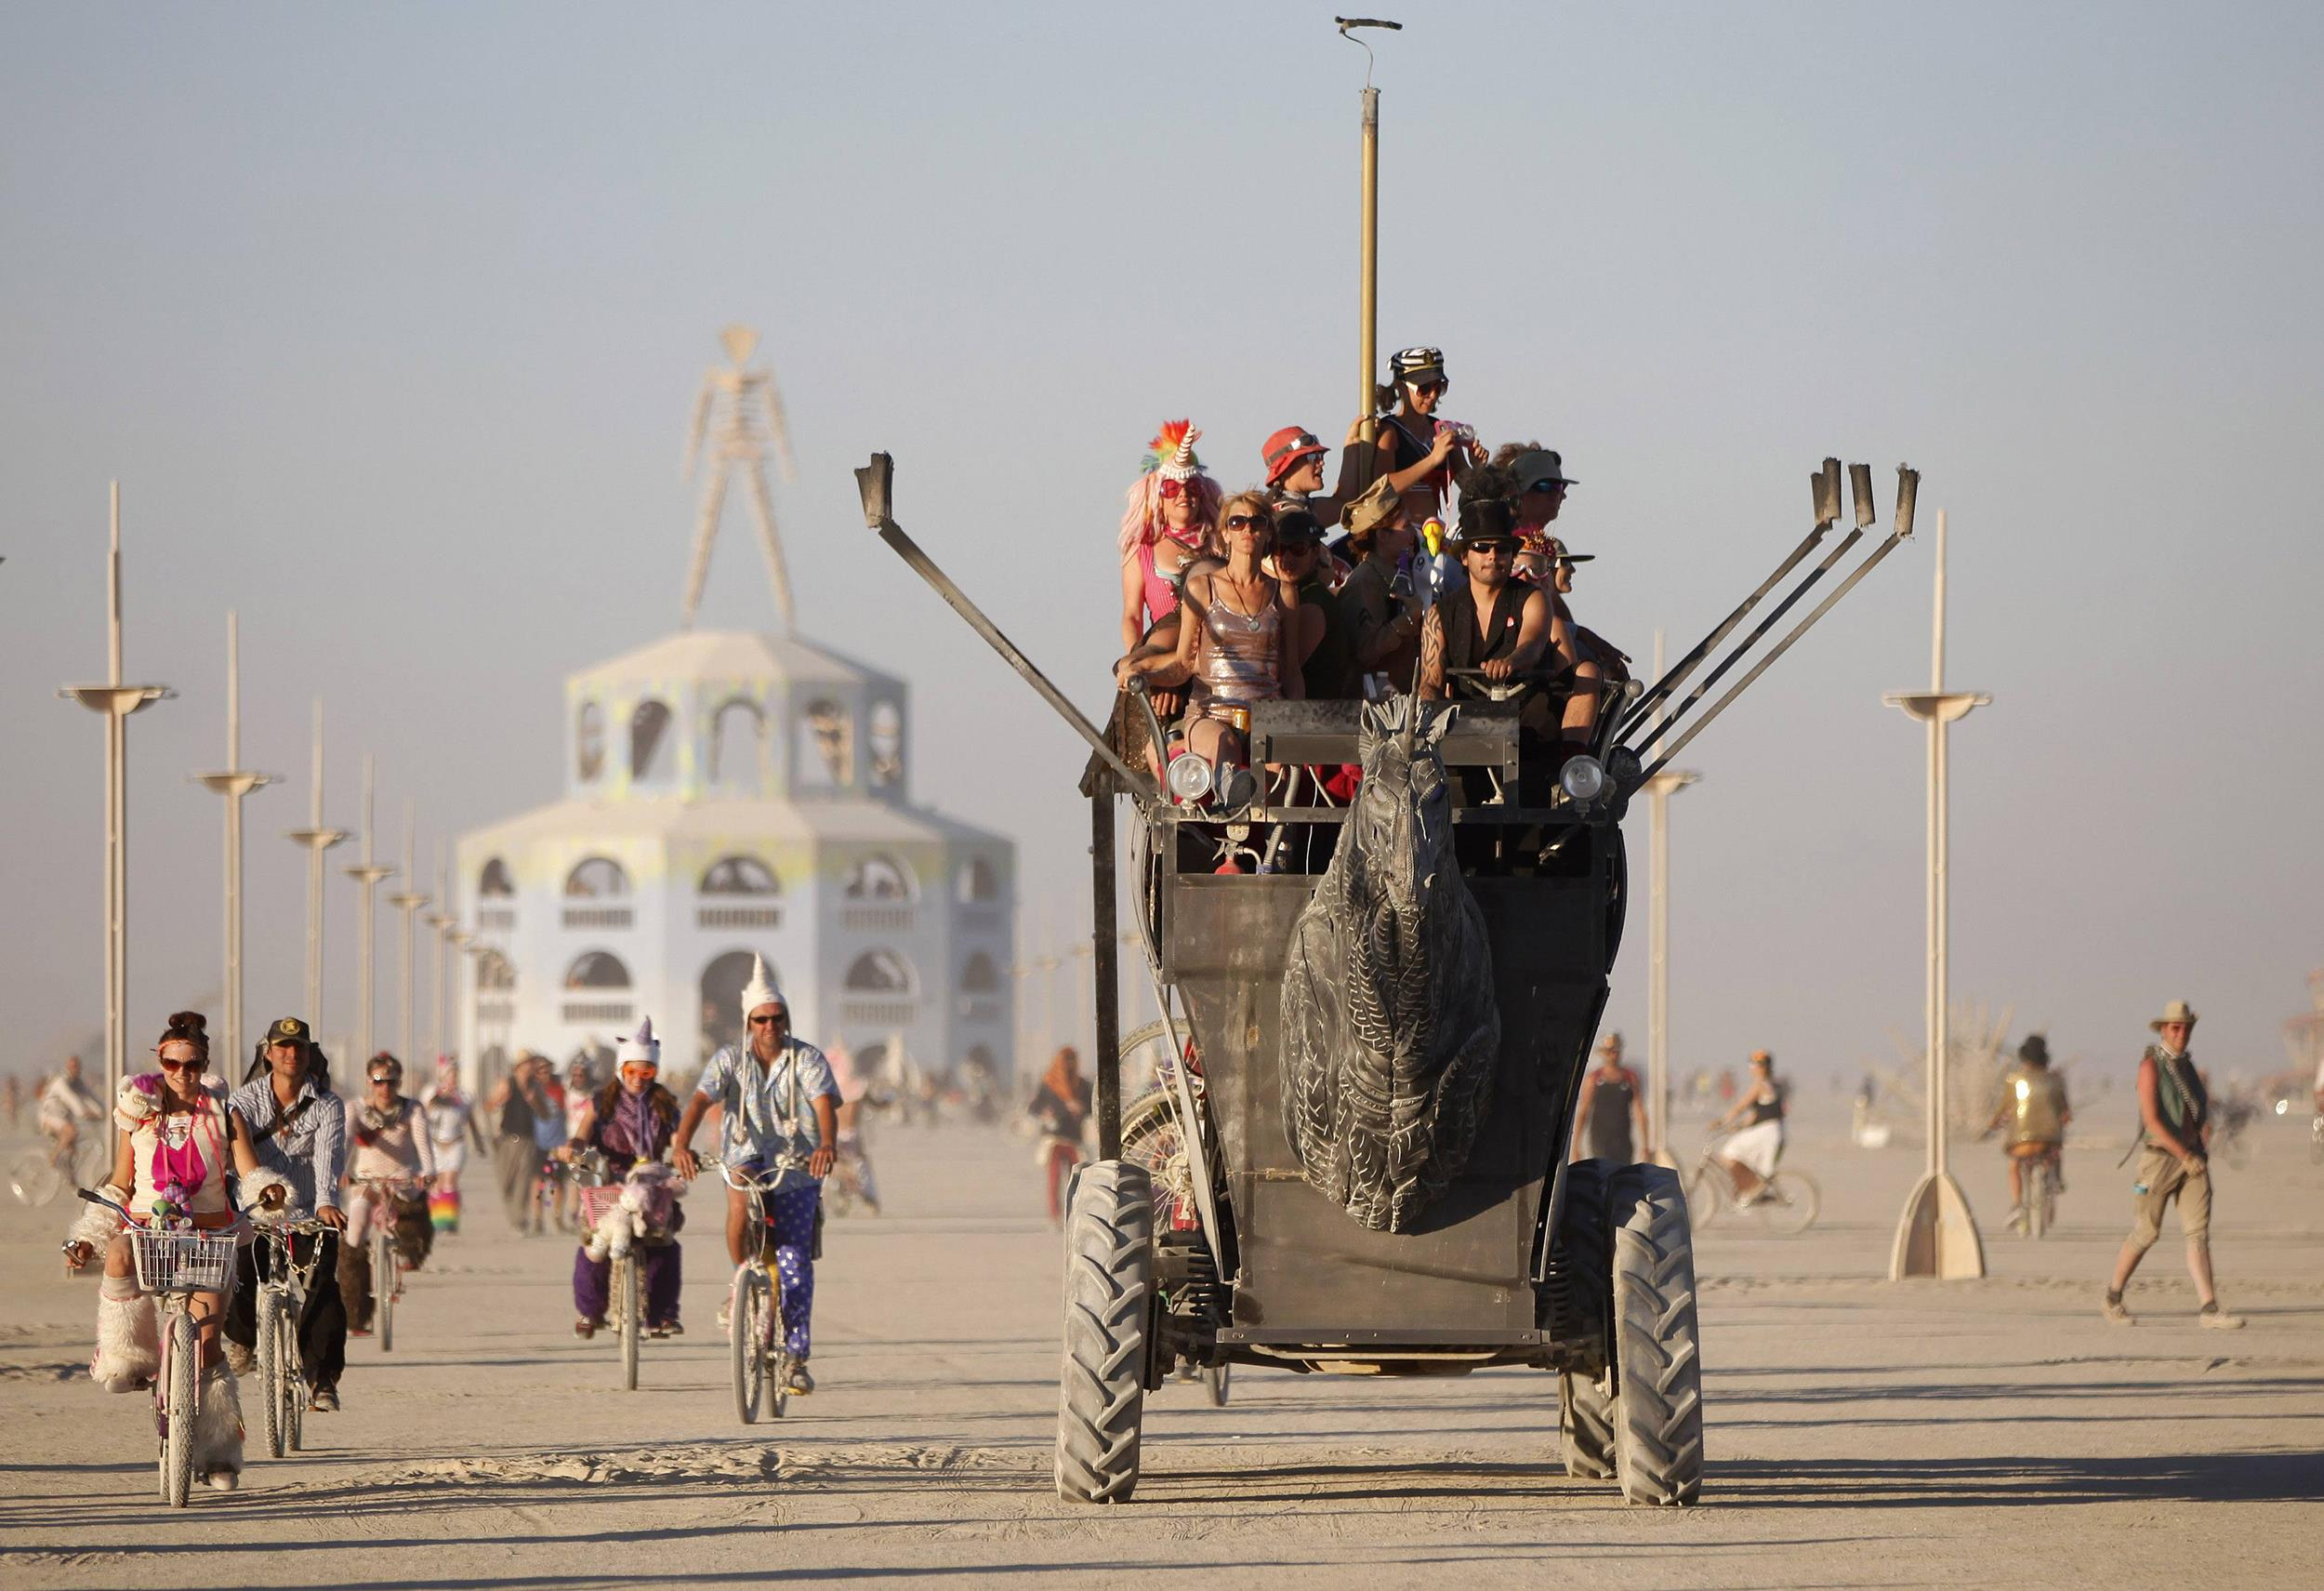 How Housing Experiments At Burning Man Could Help Refugees